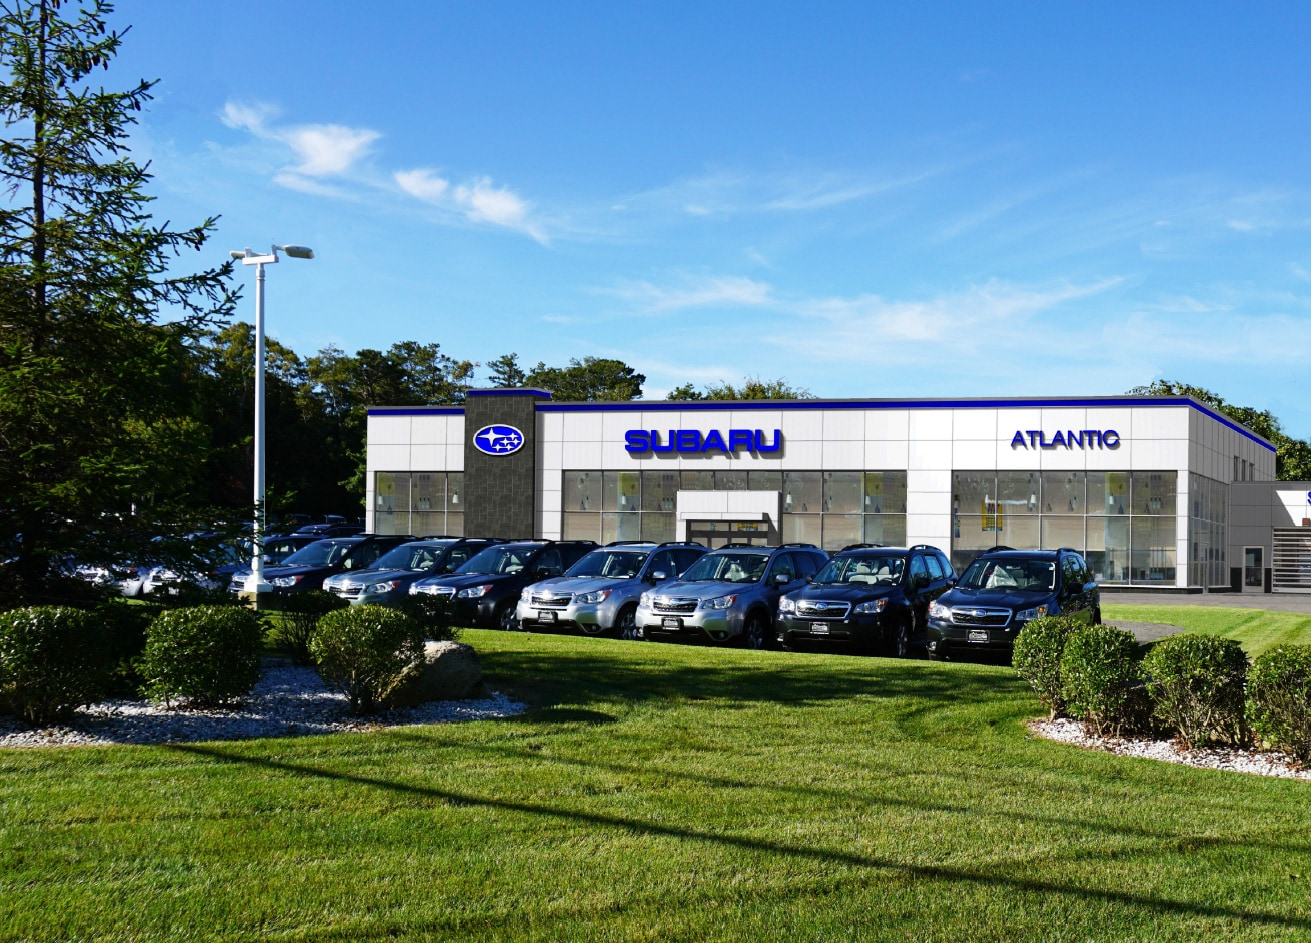 atlantic subaru cape cod subaru dealer new used subaru inventory in bourne ma. Black Bedroom Furniture Sets. Home Design Ideas